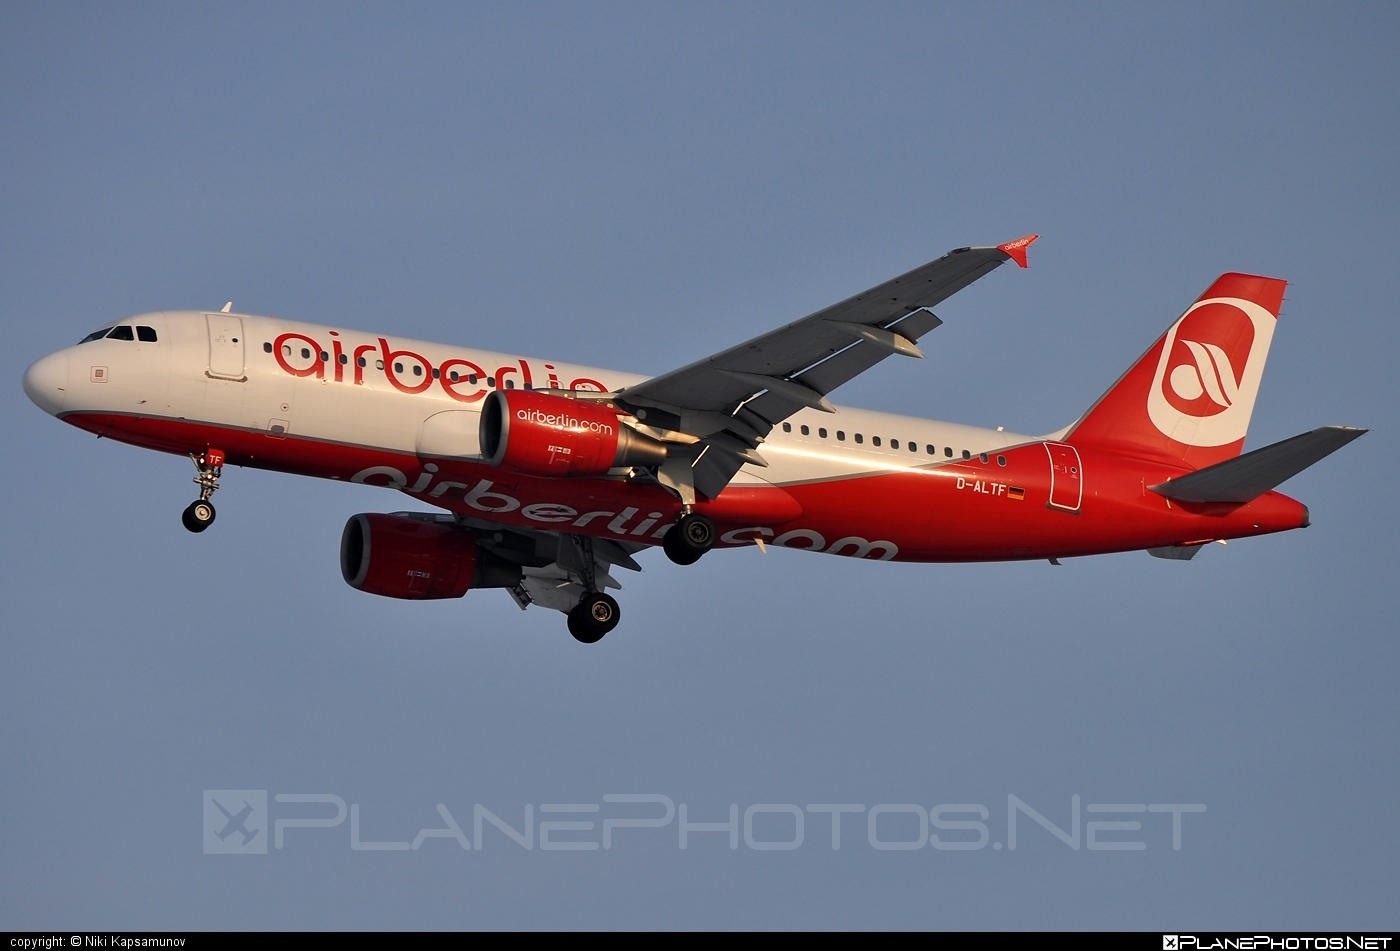 Airbus A320-214 - D-ALTF operated by Air Berlin #a320 #a320family #airberlin #airbus #airbus320